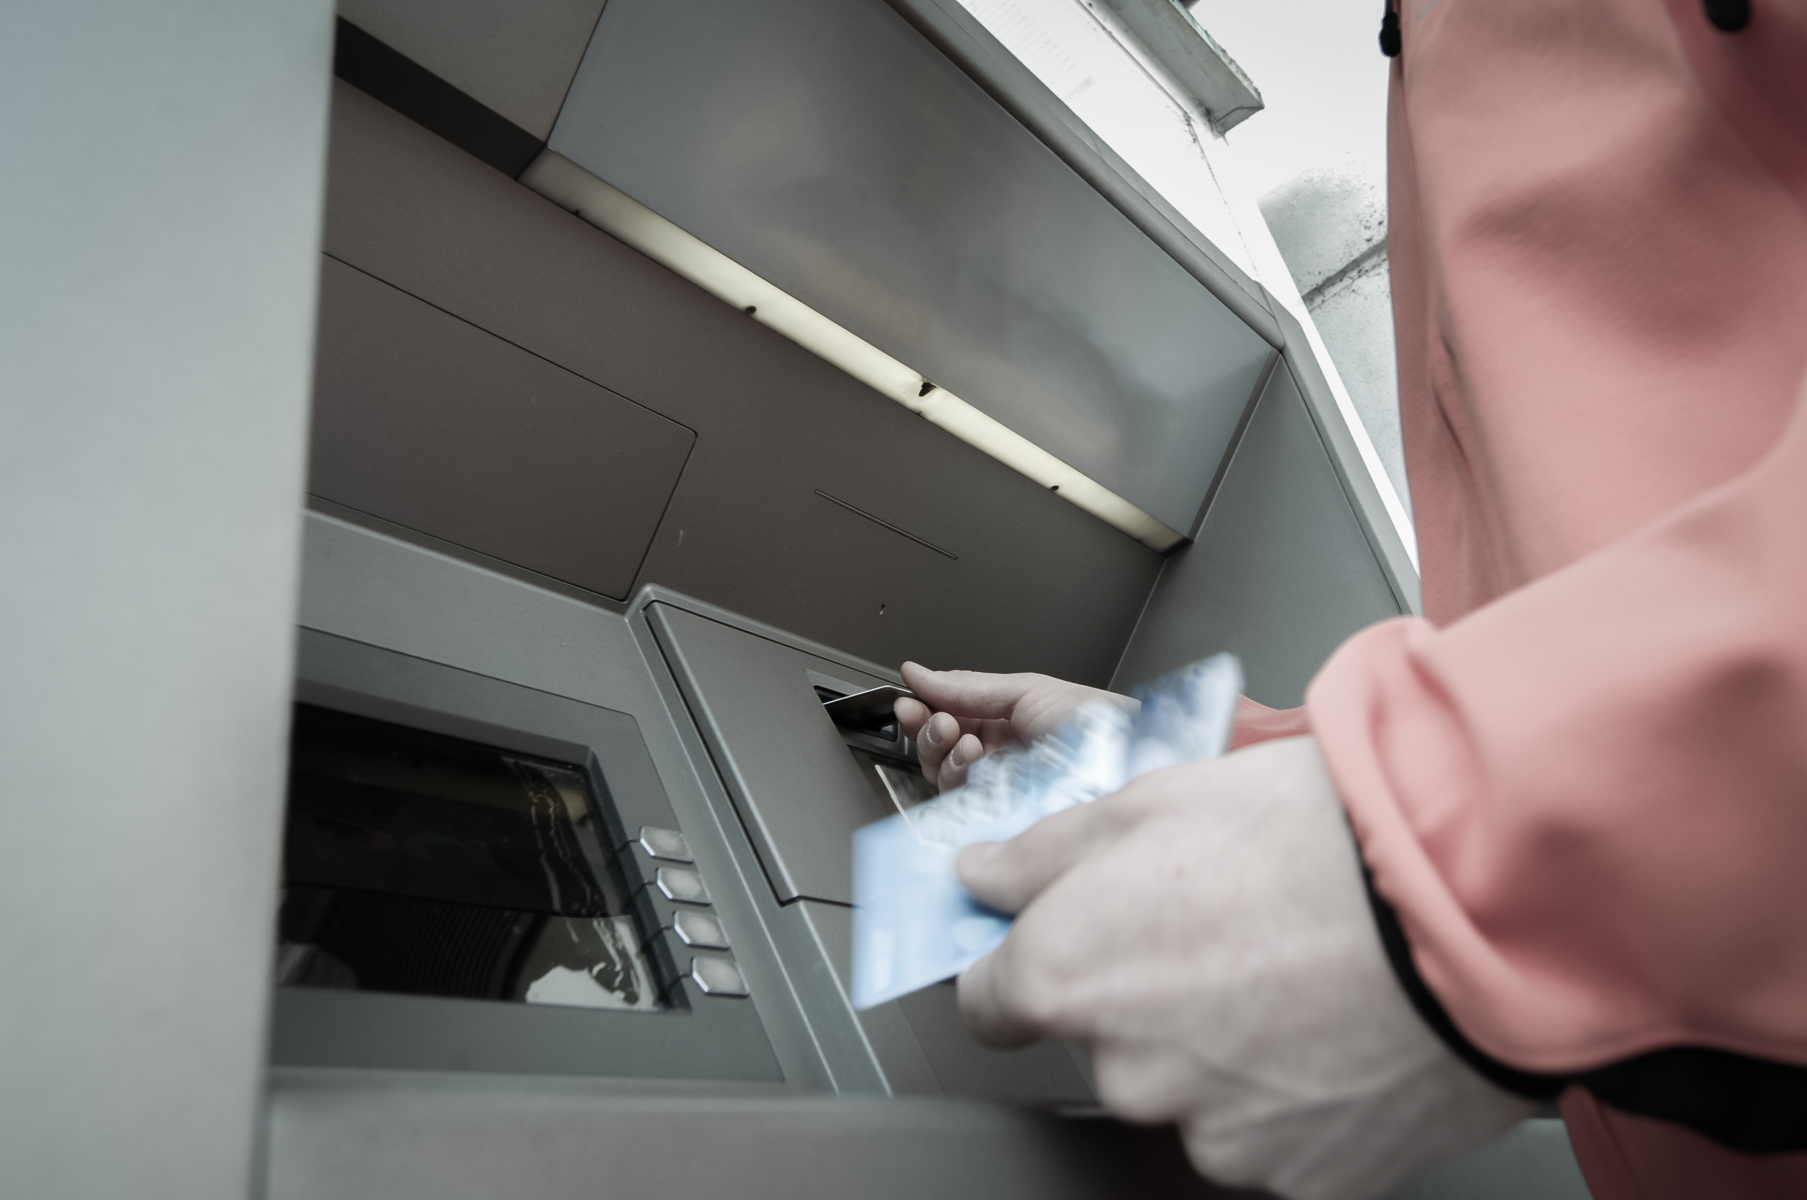 16308103-man-at-atm-machine-with-stash-of-credit-and-debit-cards.jpg